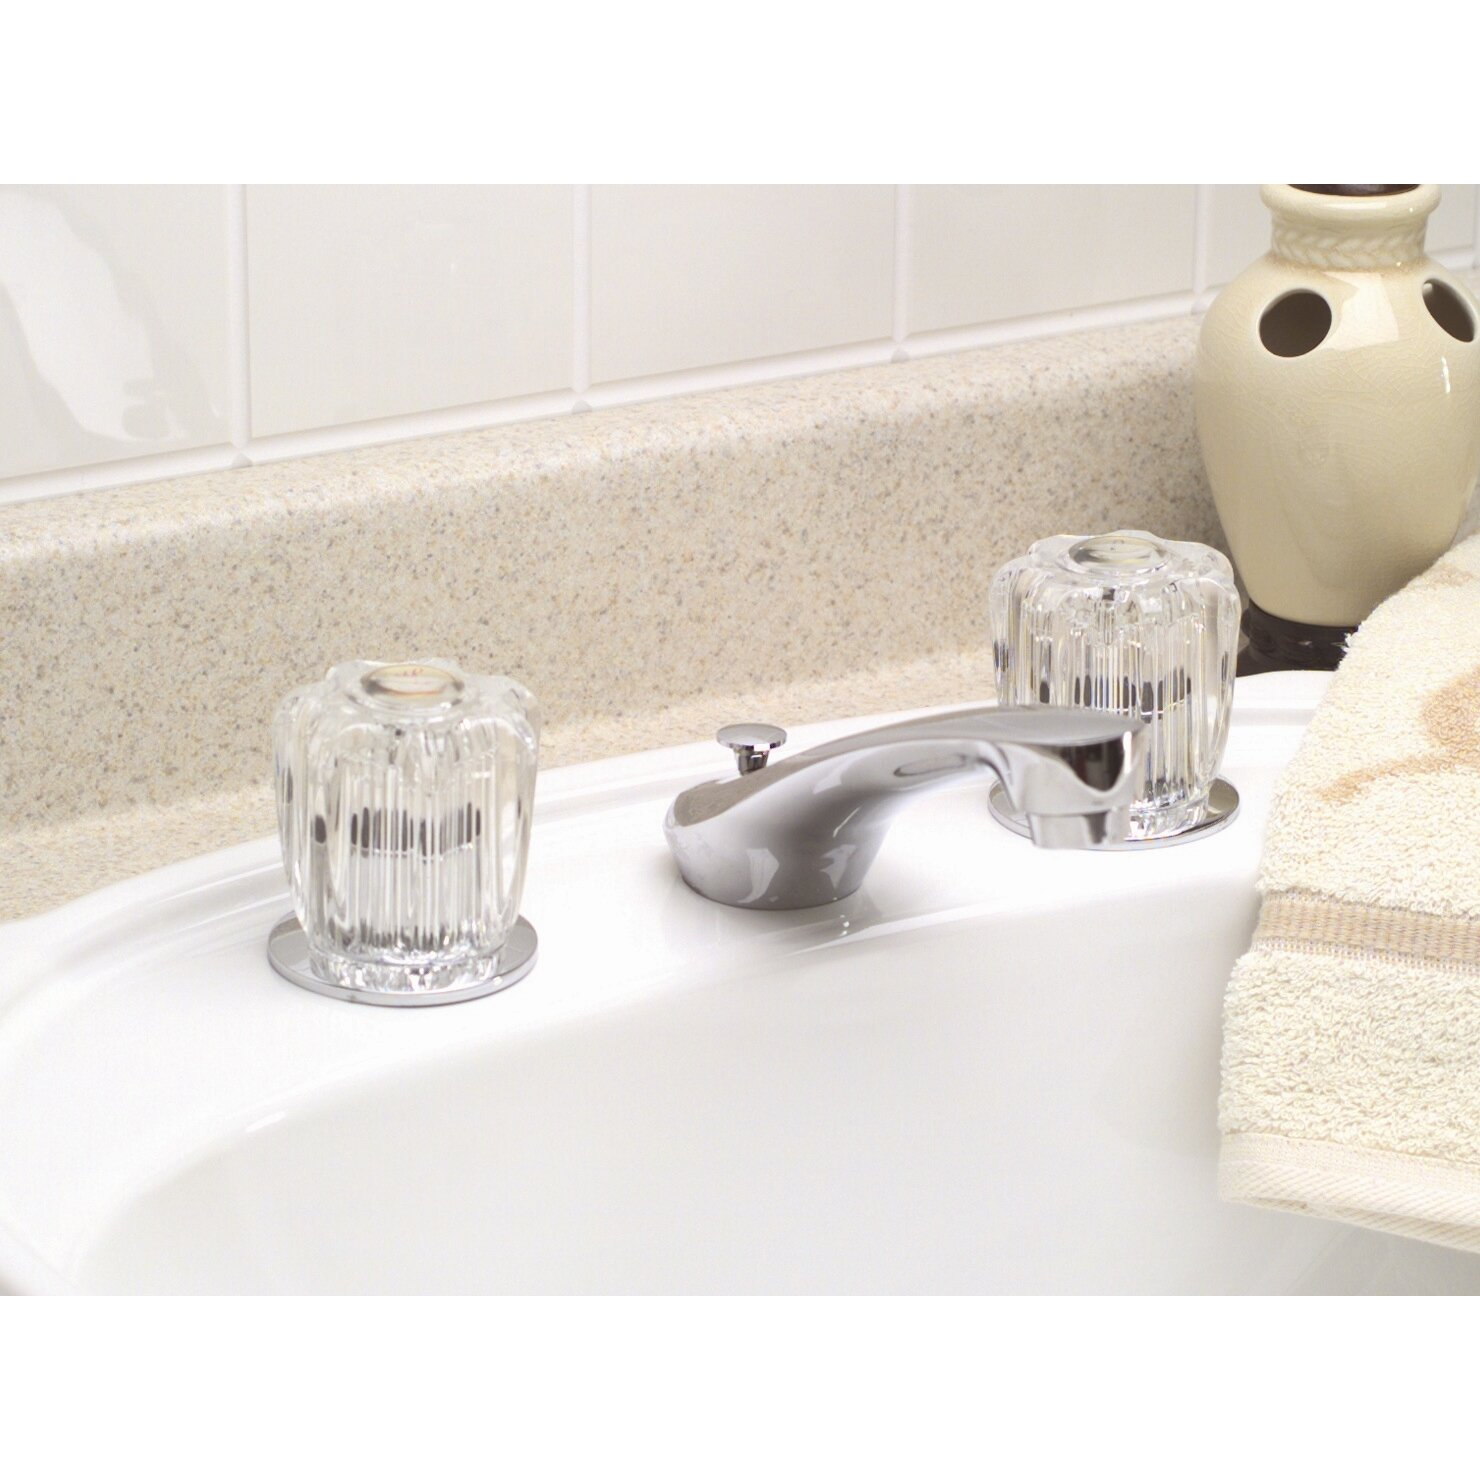 Fine Premier Bathroom Faucets Model - Water Faucet Ideas - rirakuya.info